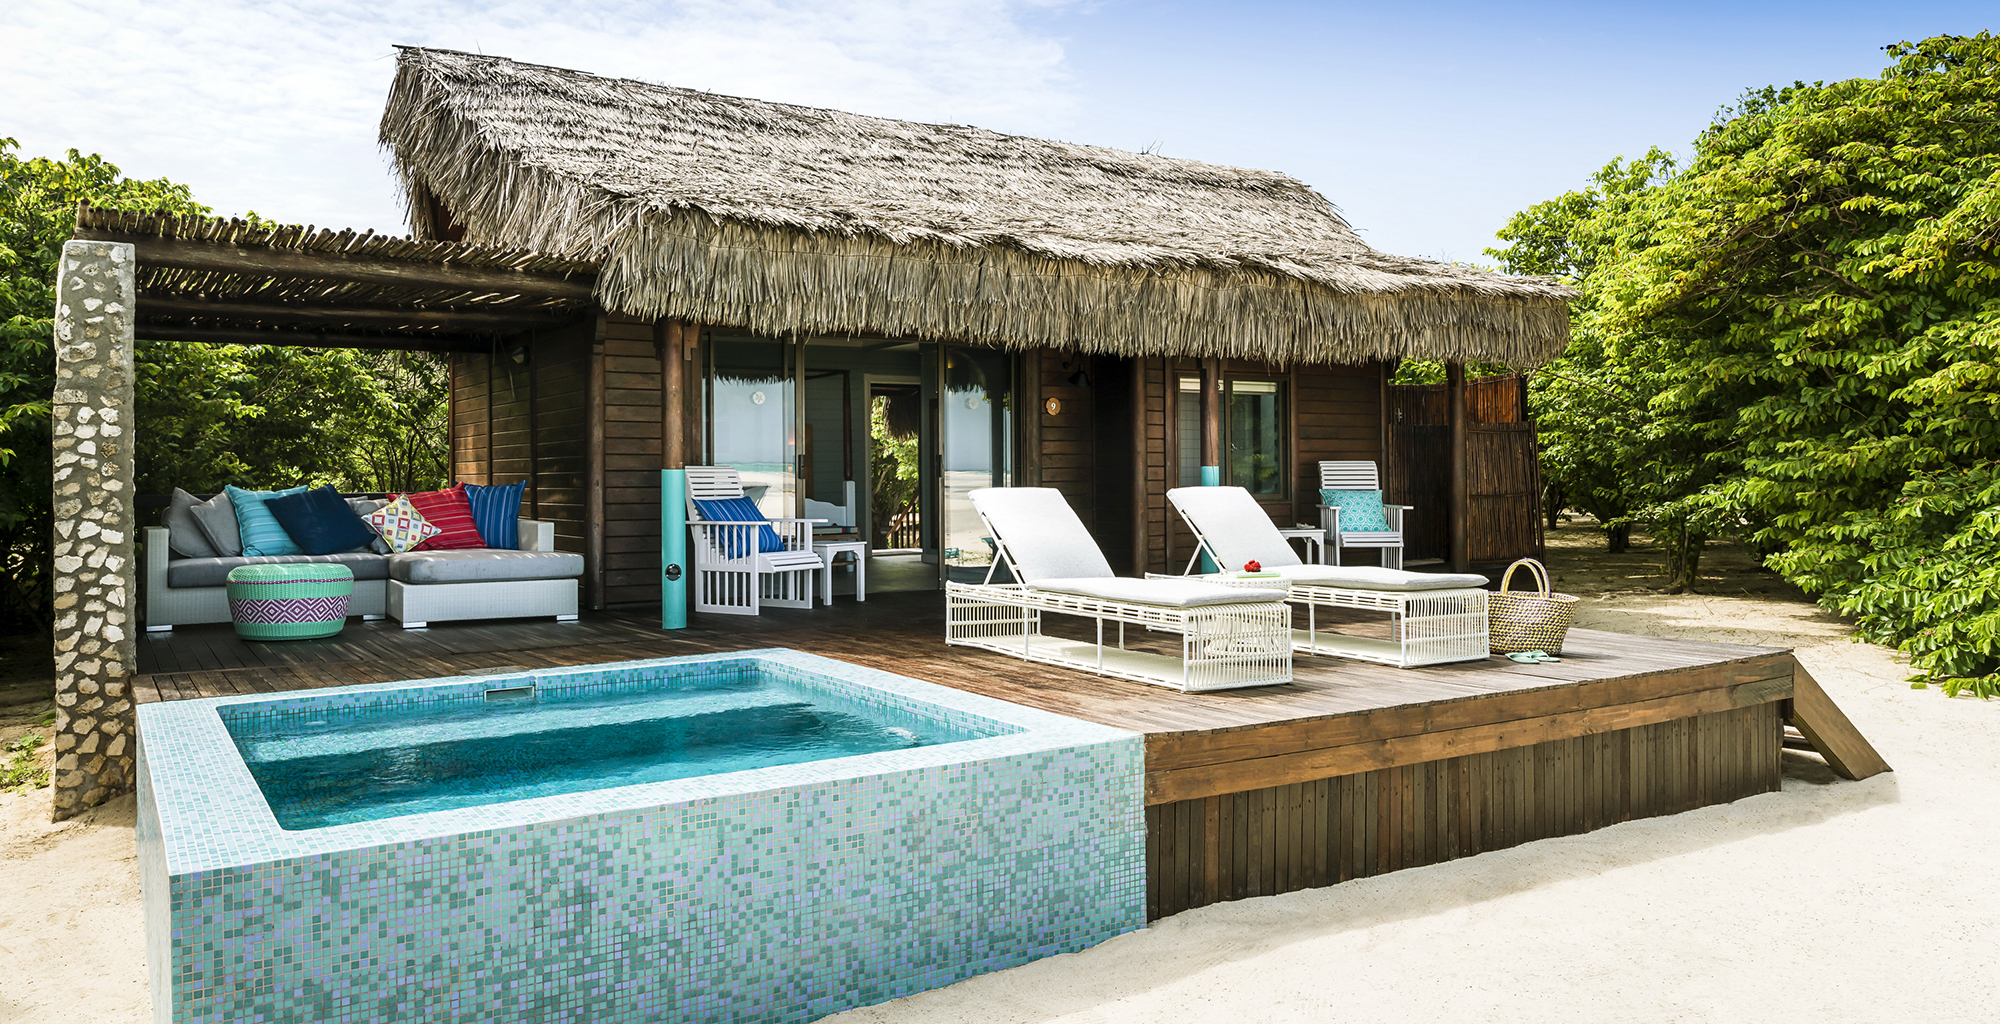 Mozambique-Medjumbe-Private-Island-Deck-Pool